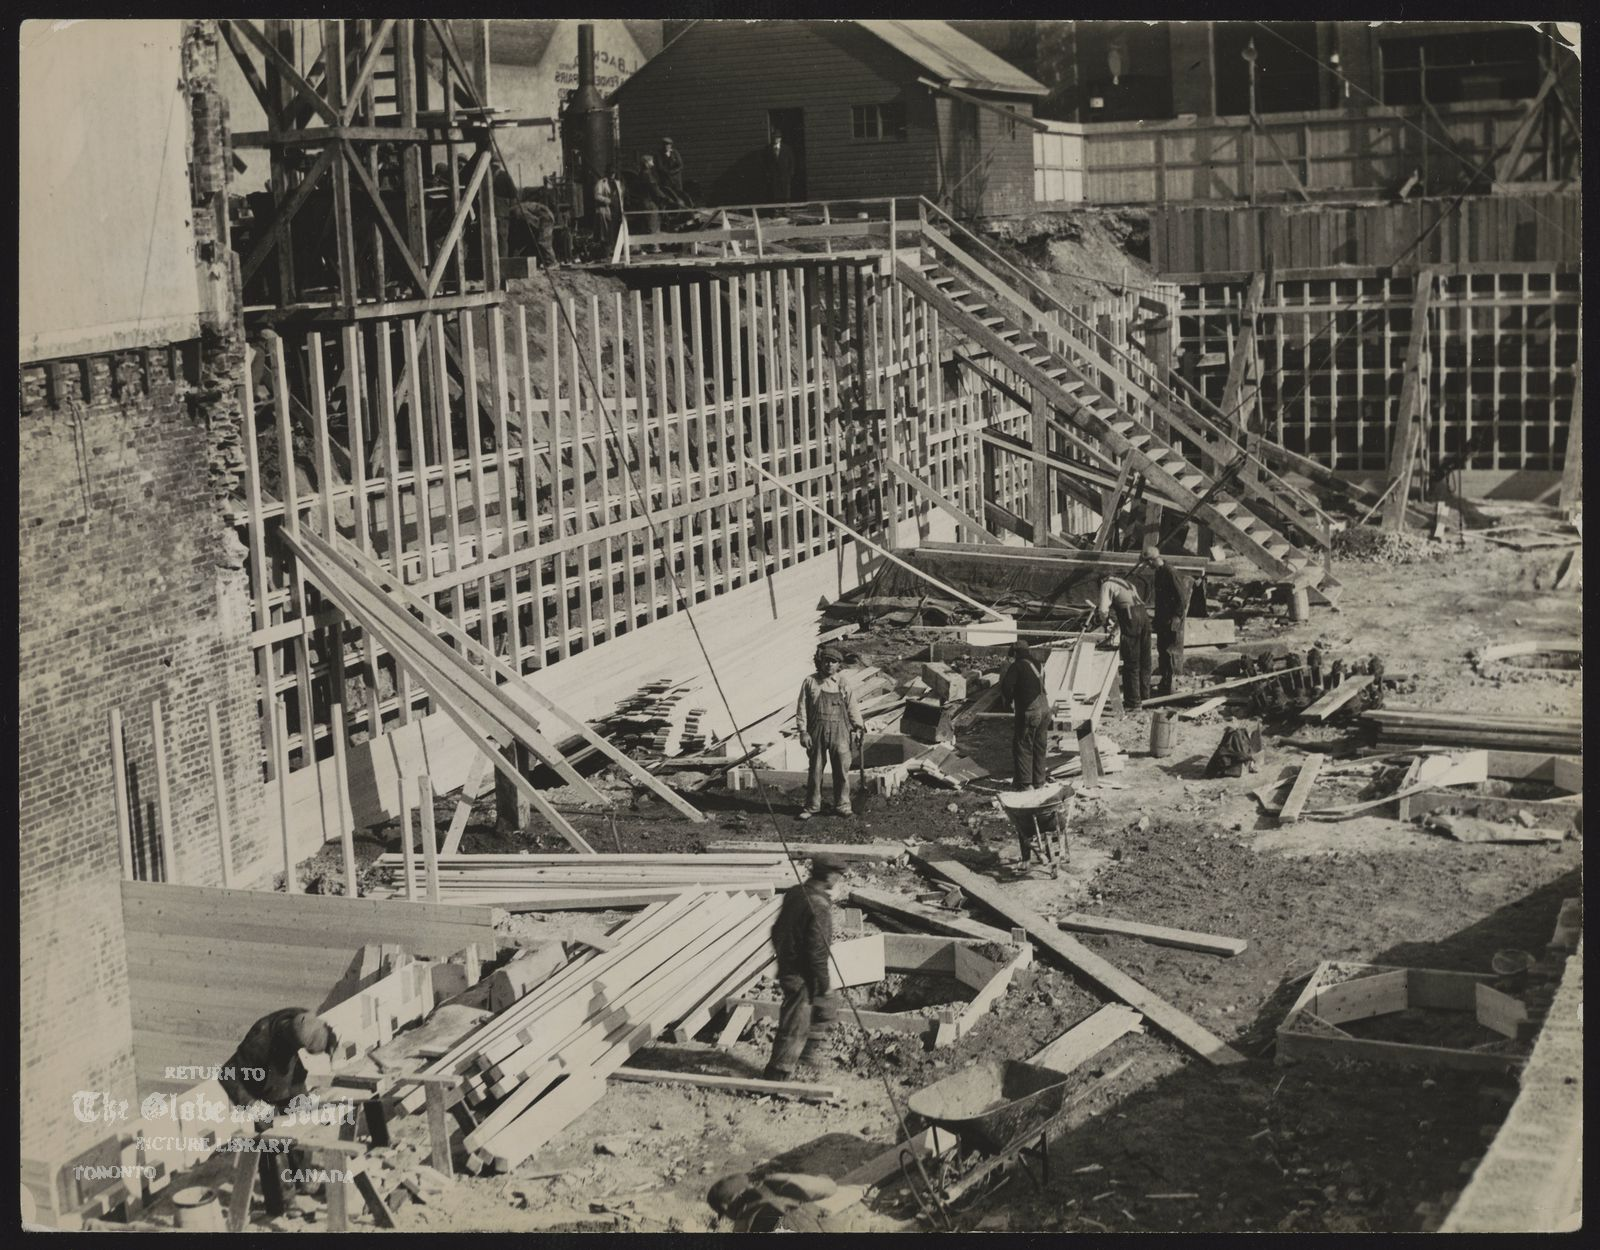 GLOBE AND MAIL Building [Globe and Mail History - The William H. Wright Building under construction at King and York Streets in Toronto, March 1937. ]